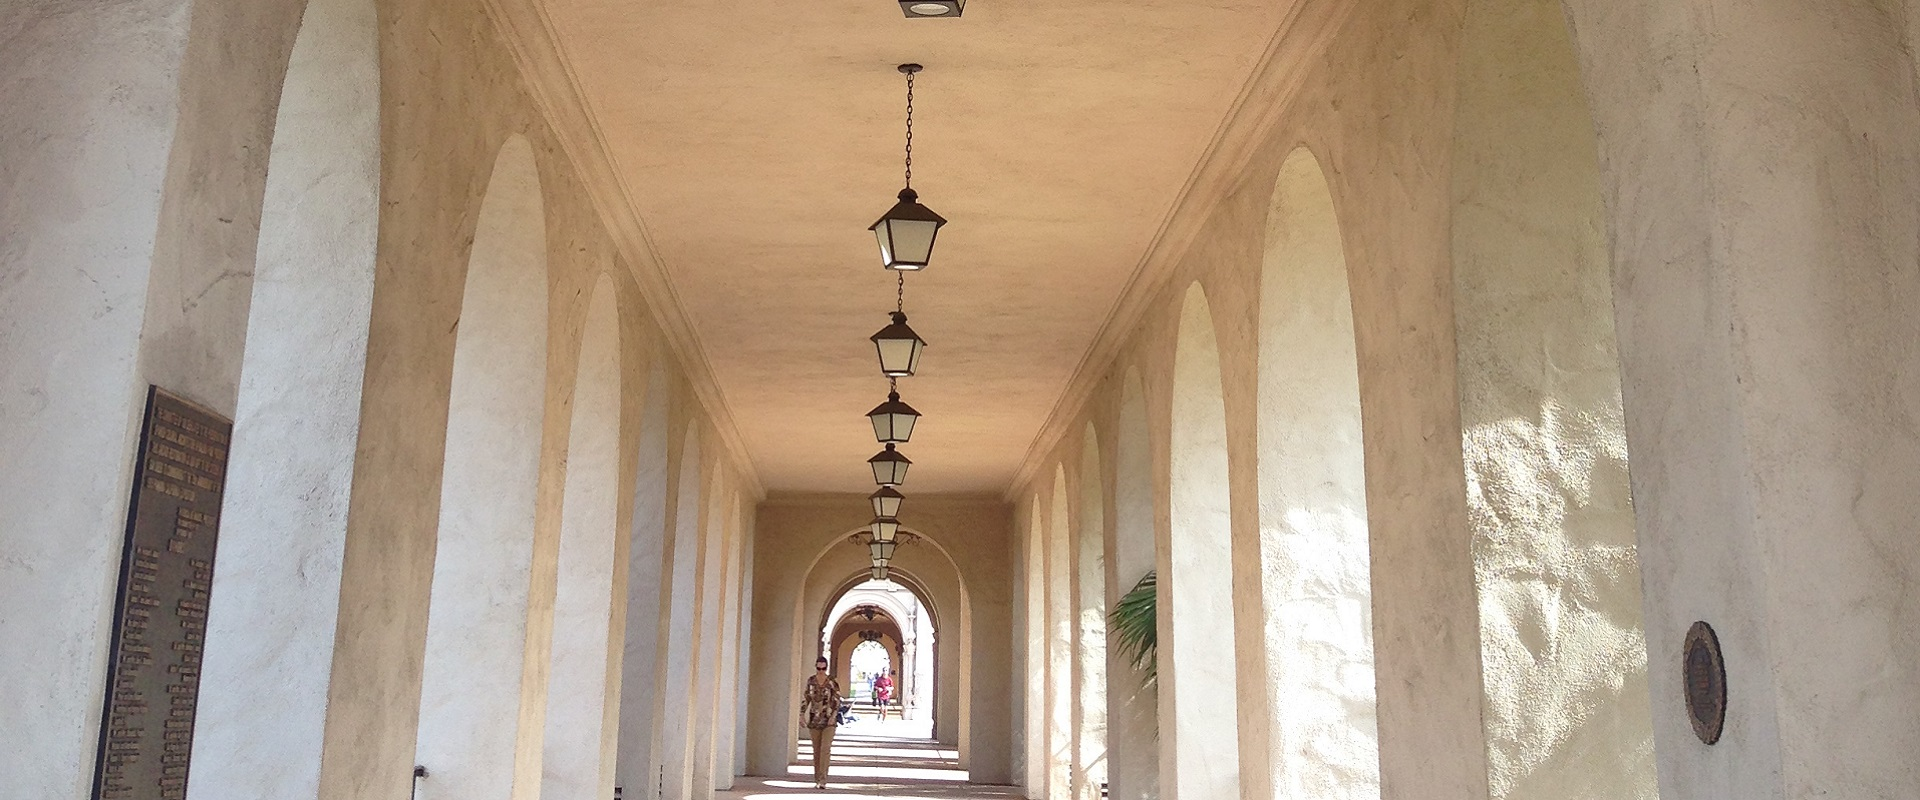 Residents Free Days Balboa Park - Museums on us list